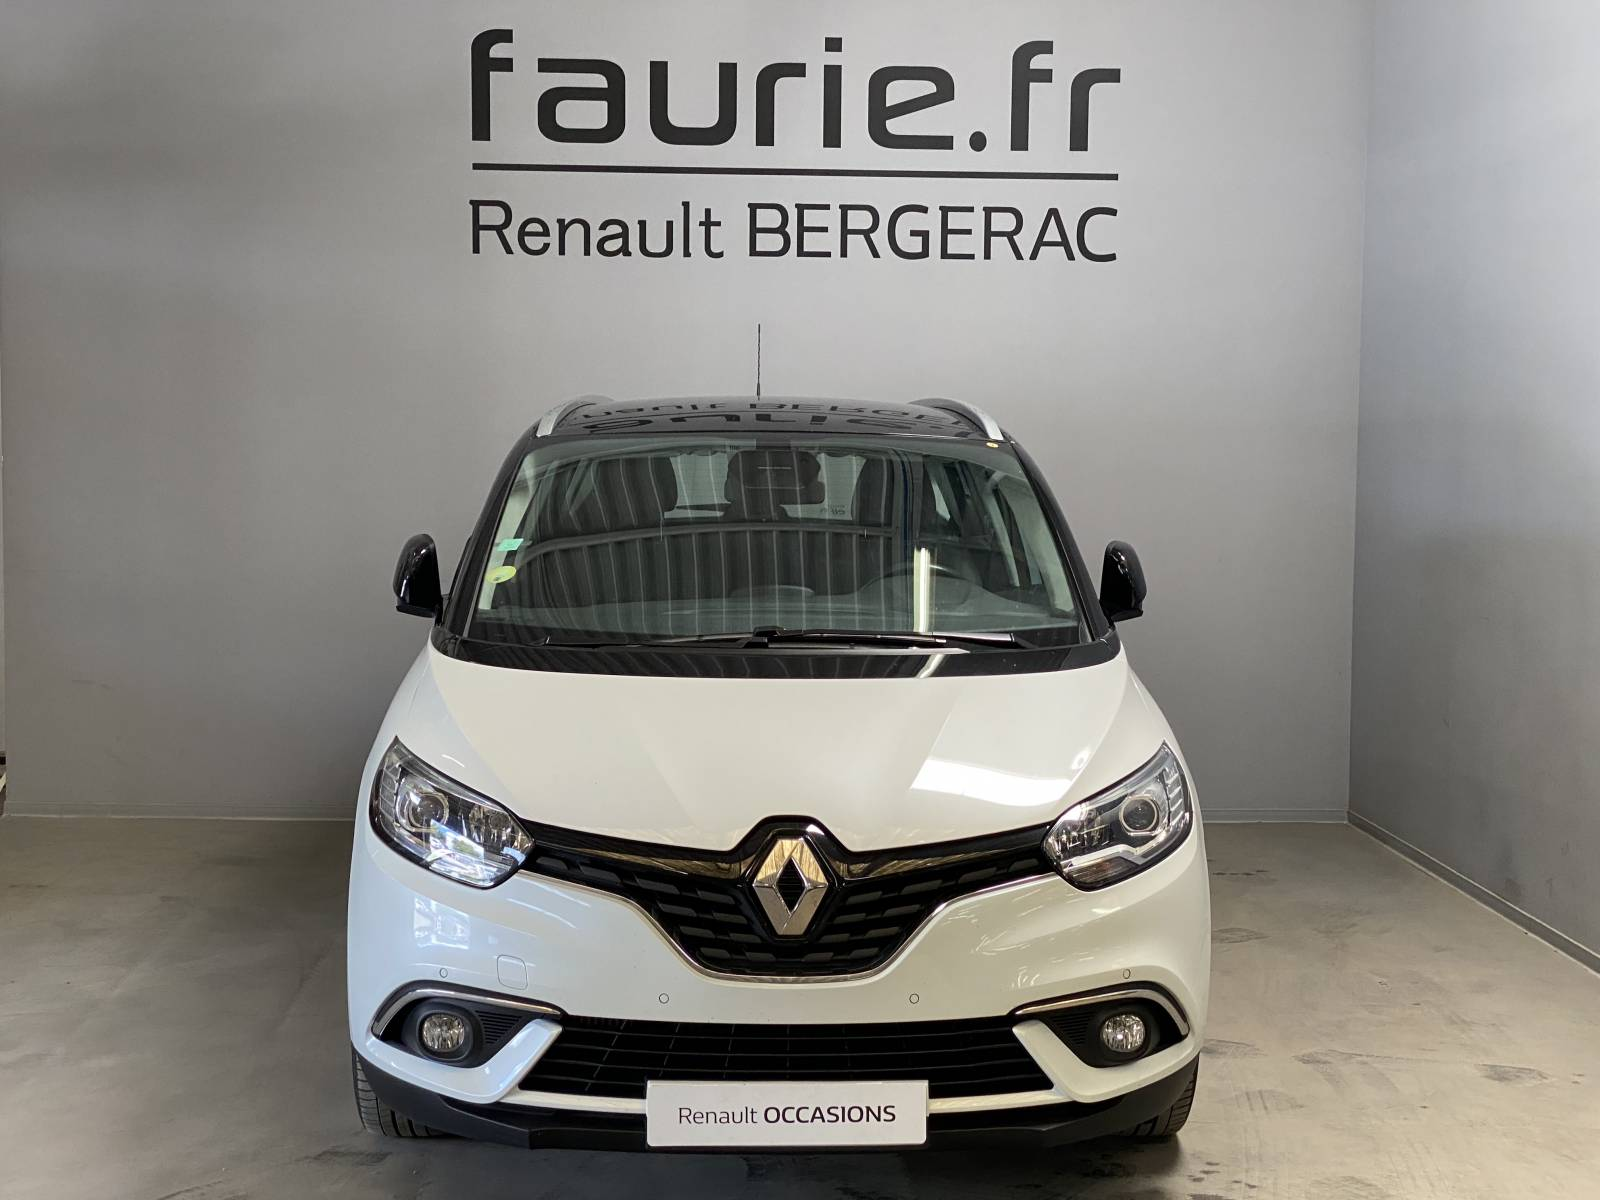 RENAULT Grand Scénic dCi 110 Energy EDC - véhicule d'occasion - Site Internet Faurie - Renault - Faurie Auto Bergerac - 24100 - Bergerac - 2